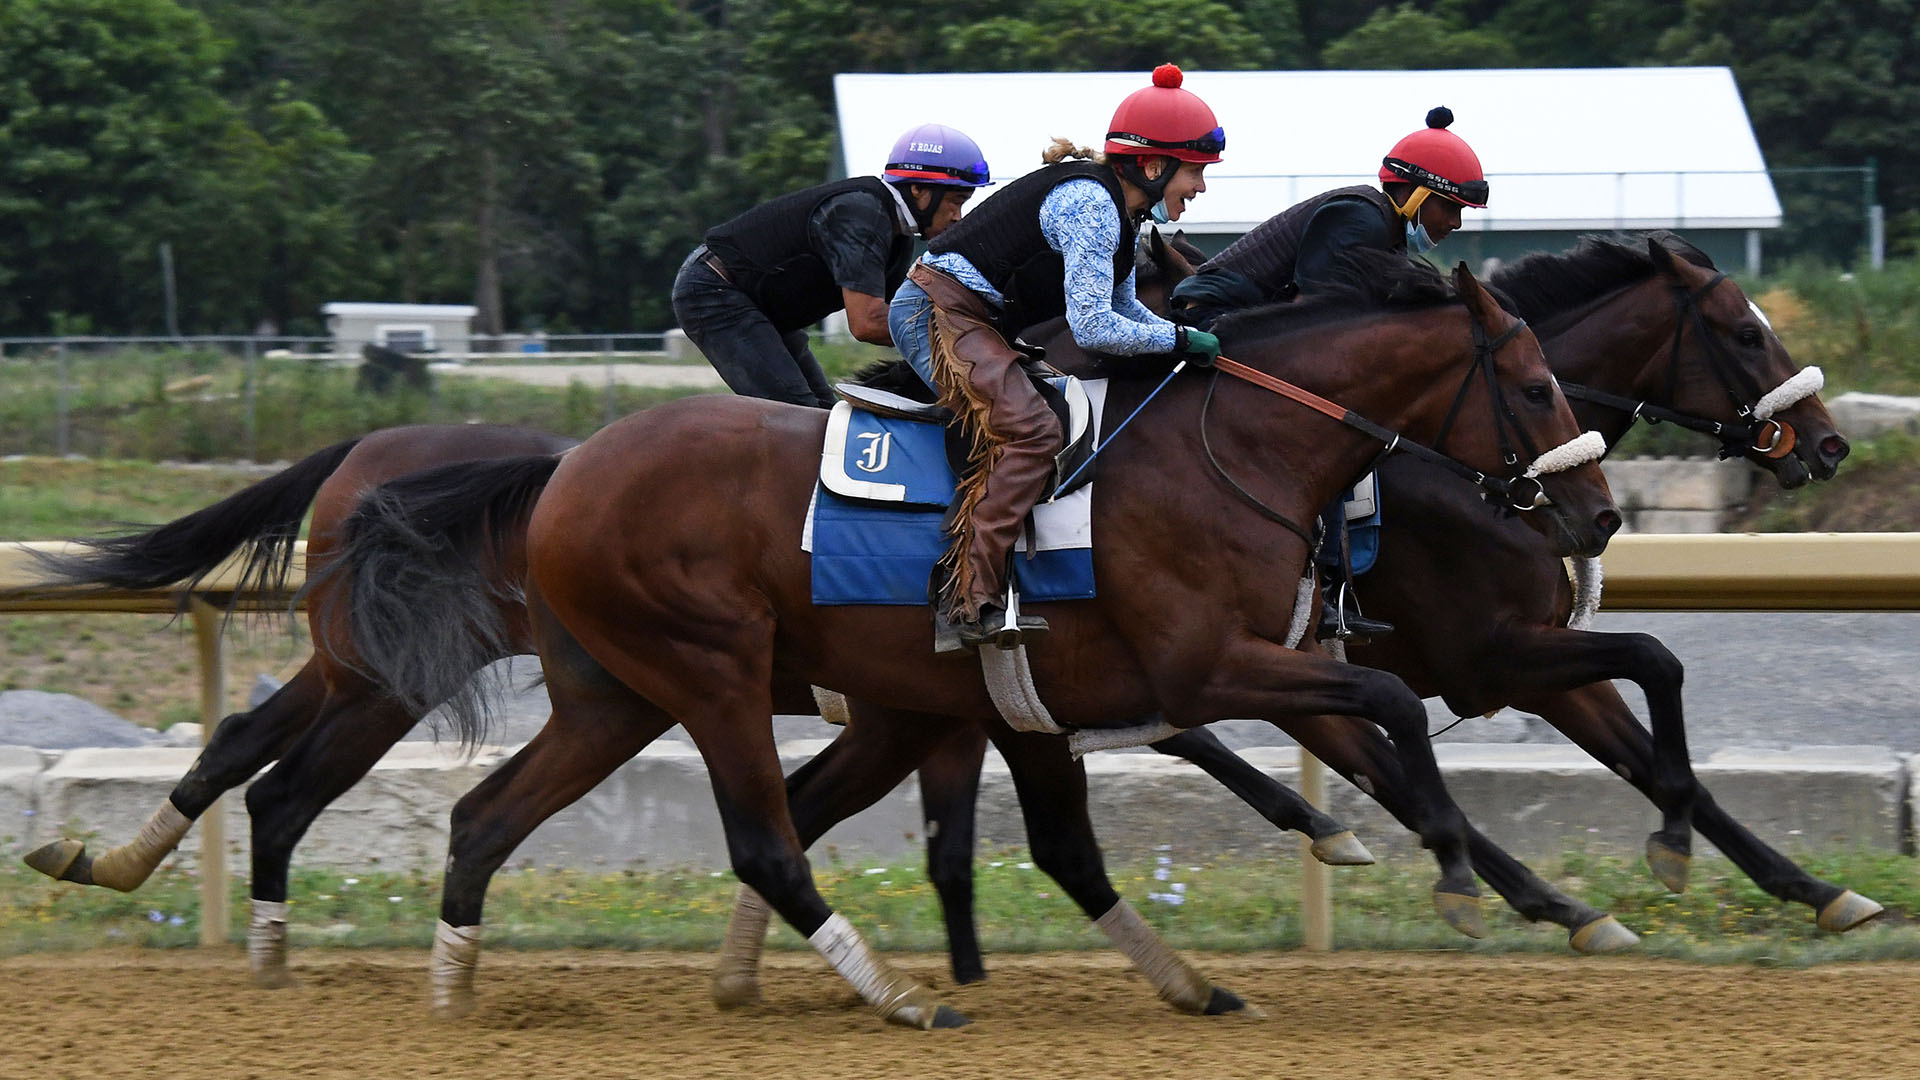 Royal Realm (Empire Maker - Zelda Rose) works at Belmont Park. Royal Realm is a member of the Cardinal, LLC thoroughbred racing partnership.